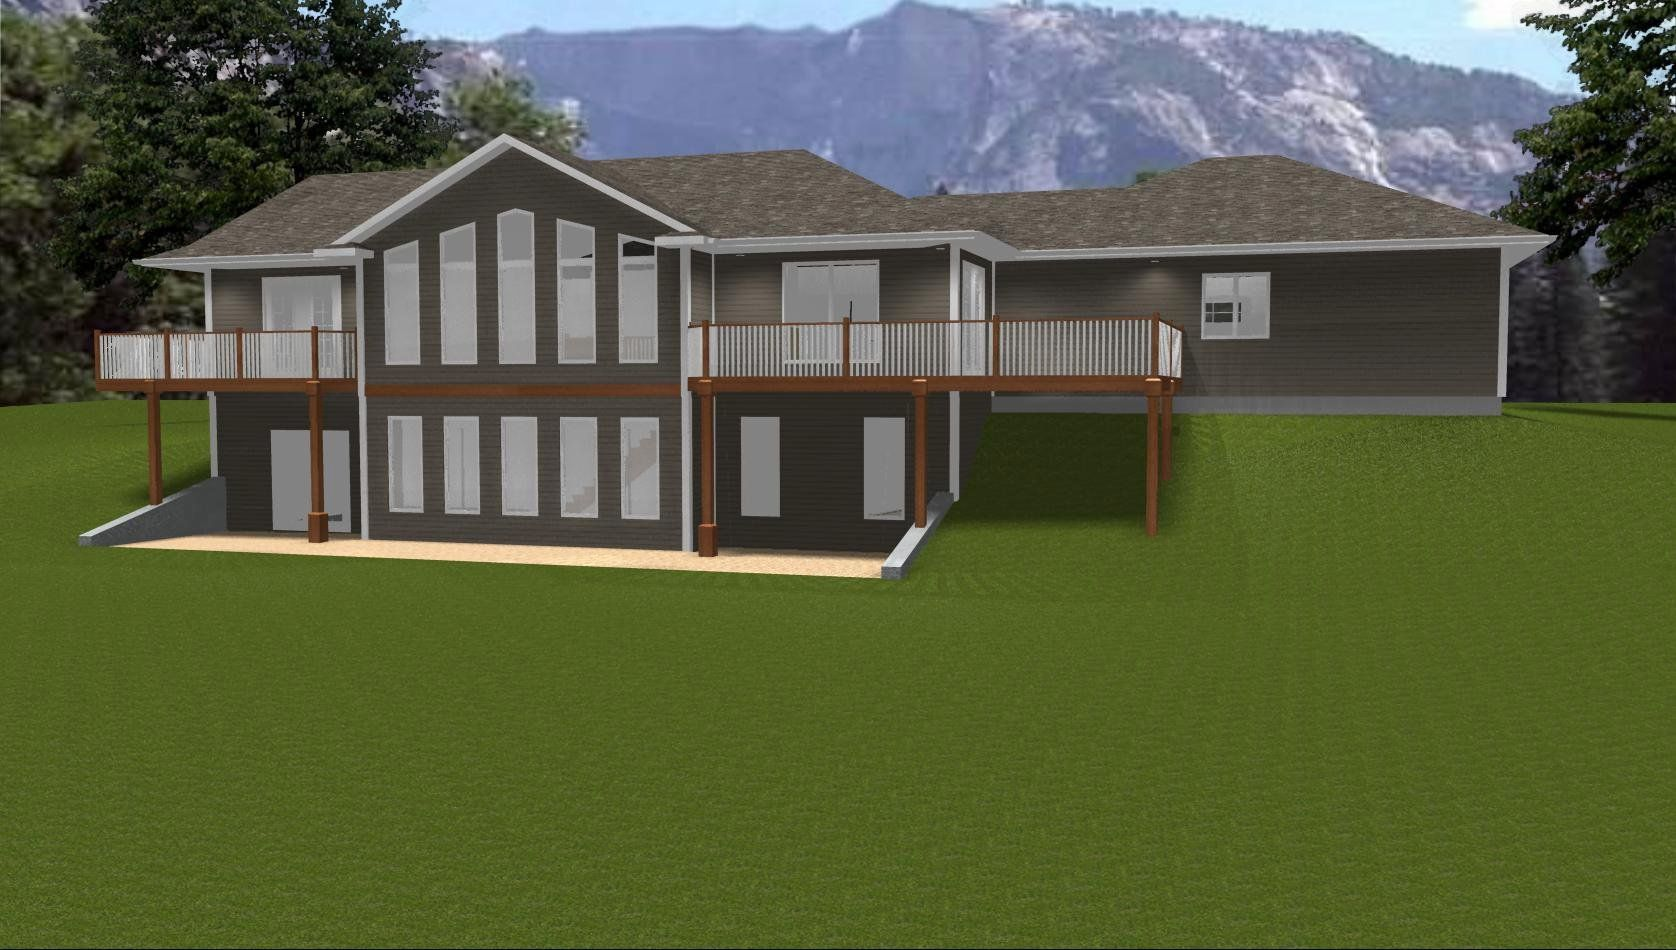 Craftsman Ranch House Plans With Walkout Basement Unique House Plans Basement House Plans Ranch House Plans